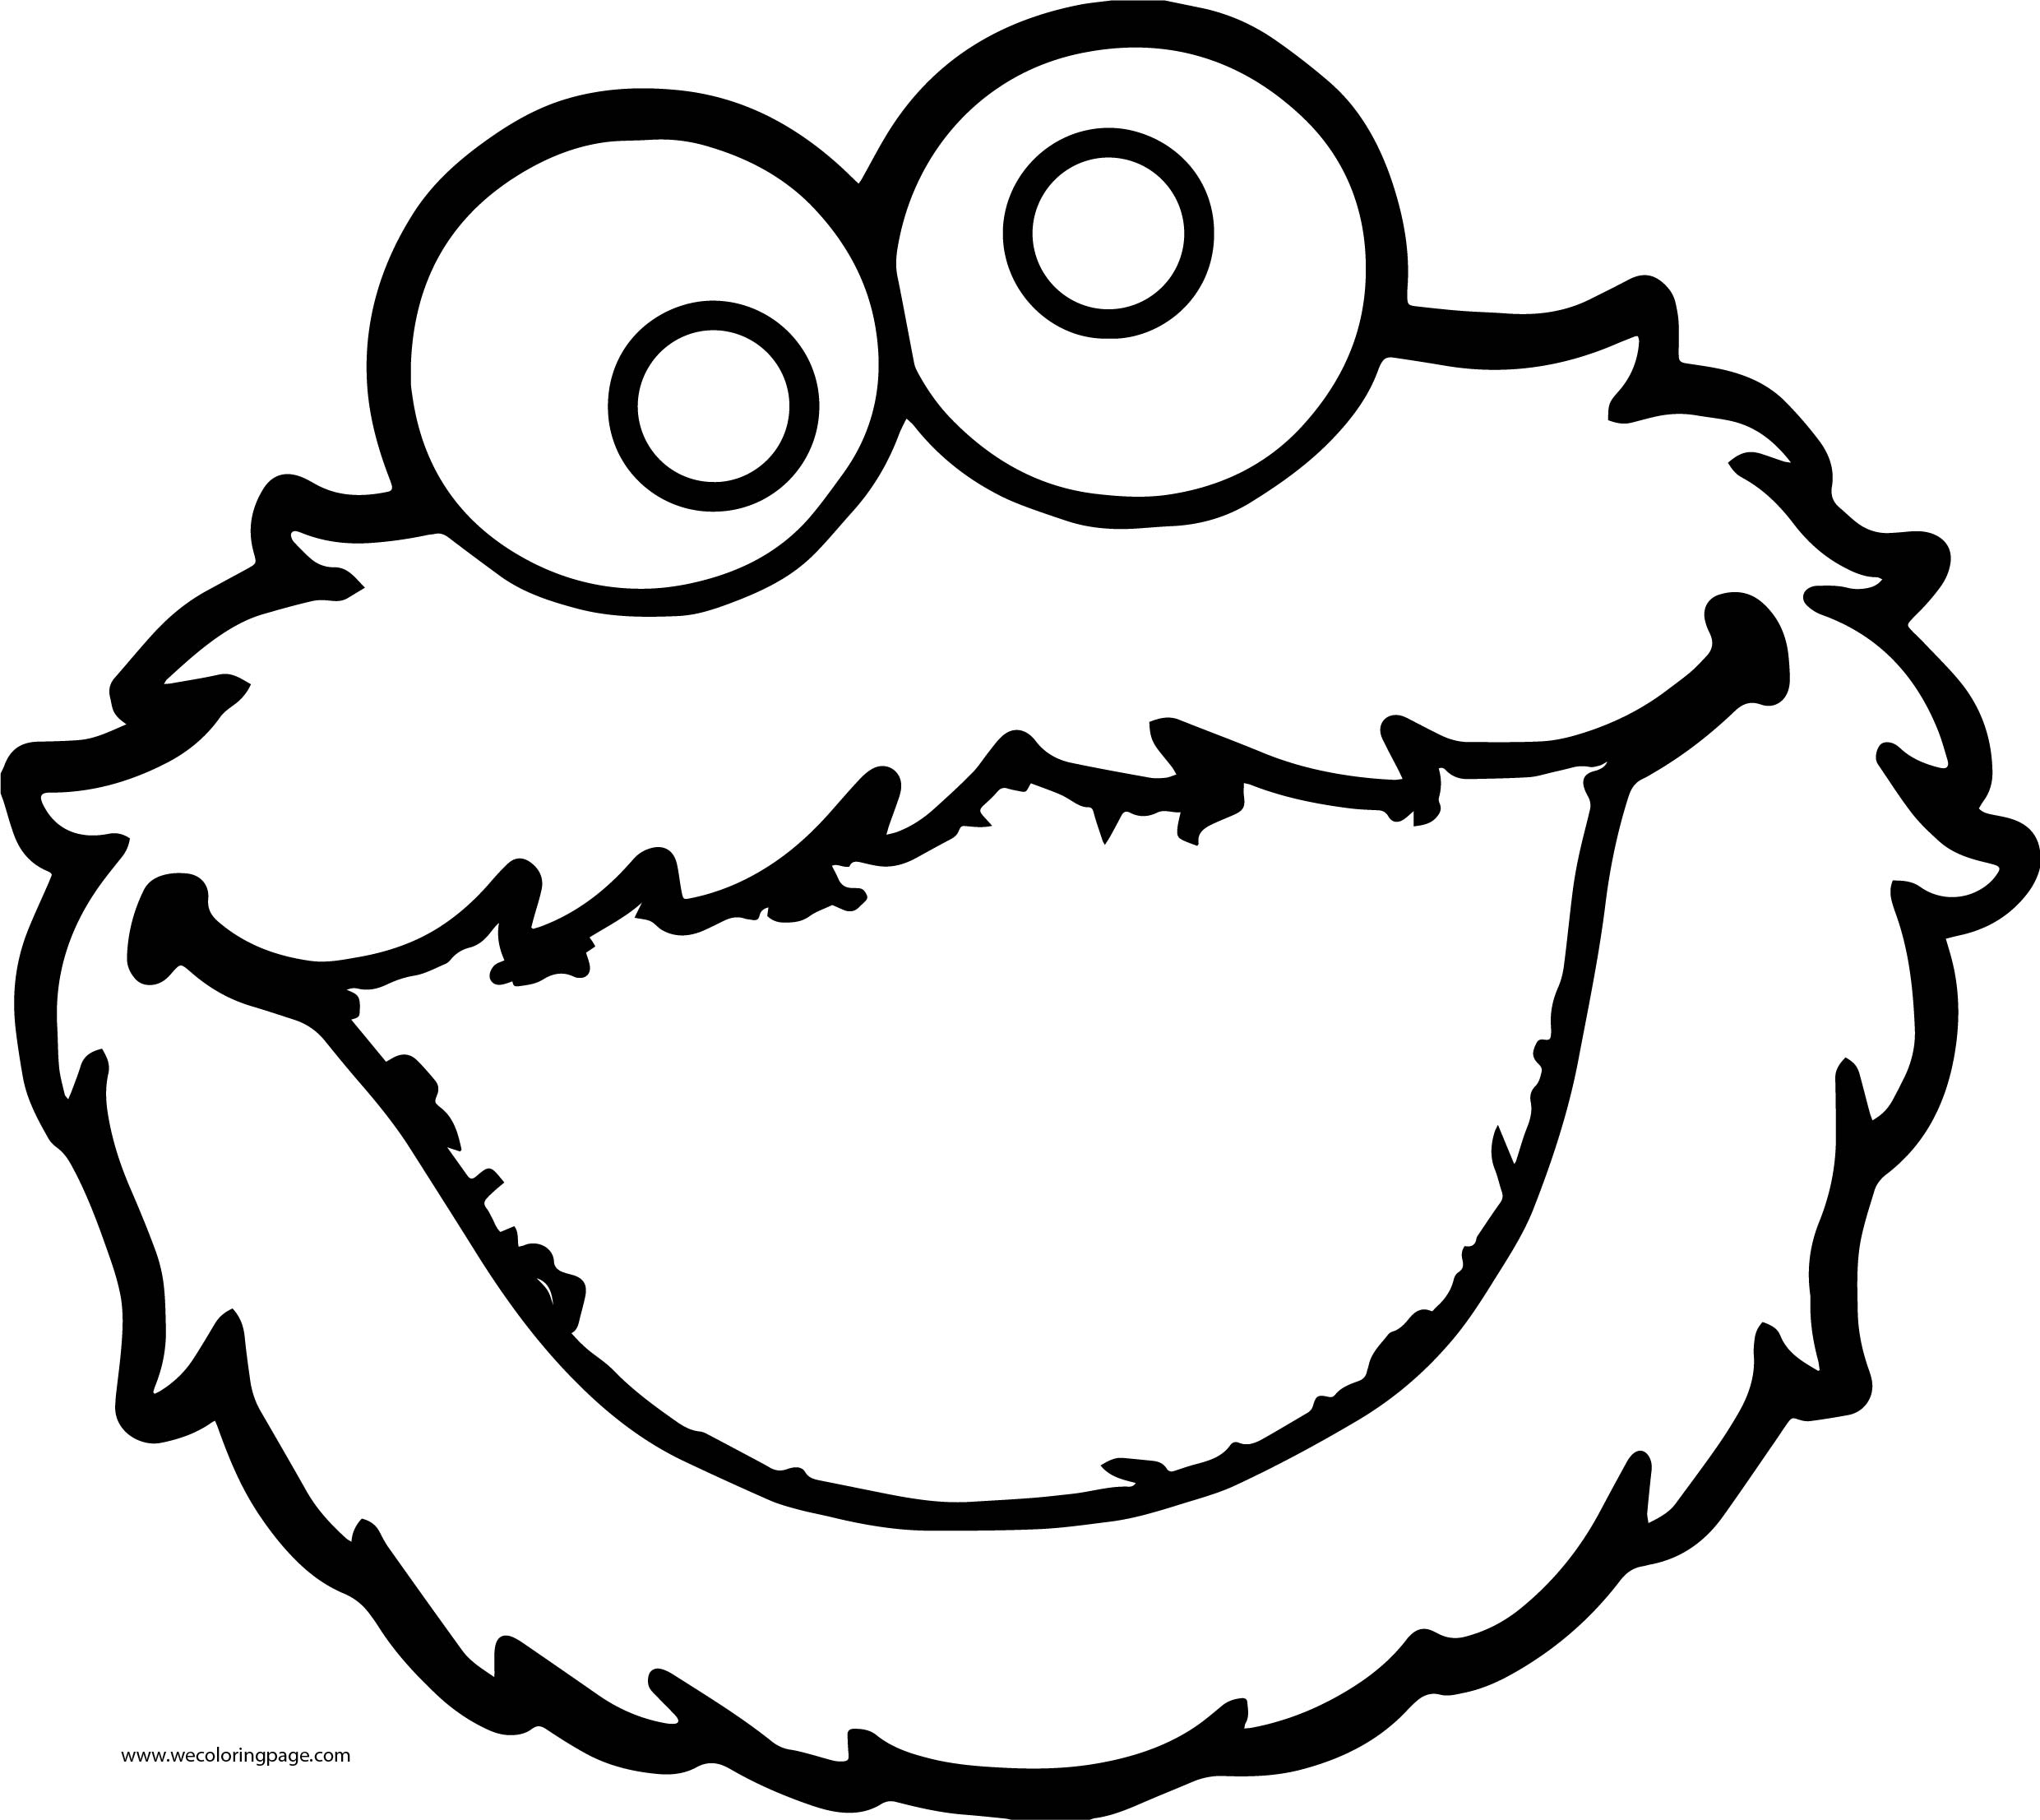 Most Popular Sesame Street Characters Cookie Monster Sesame Street Coloring Page